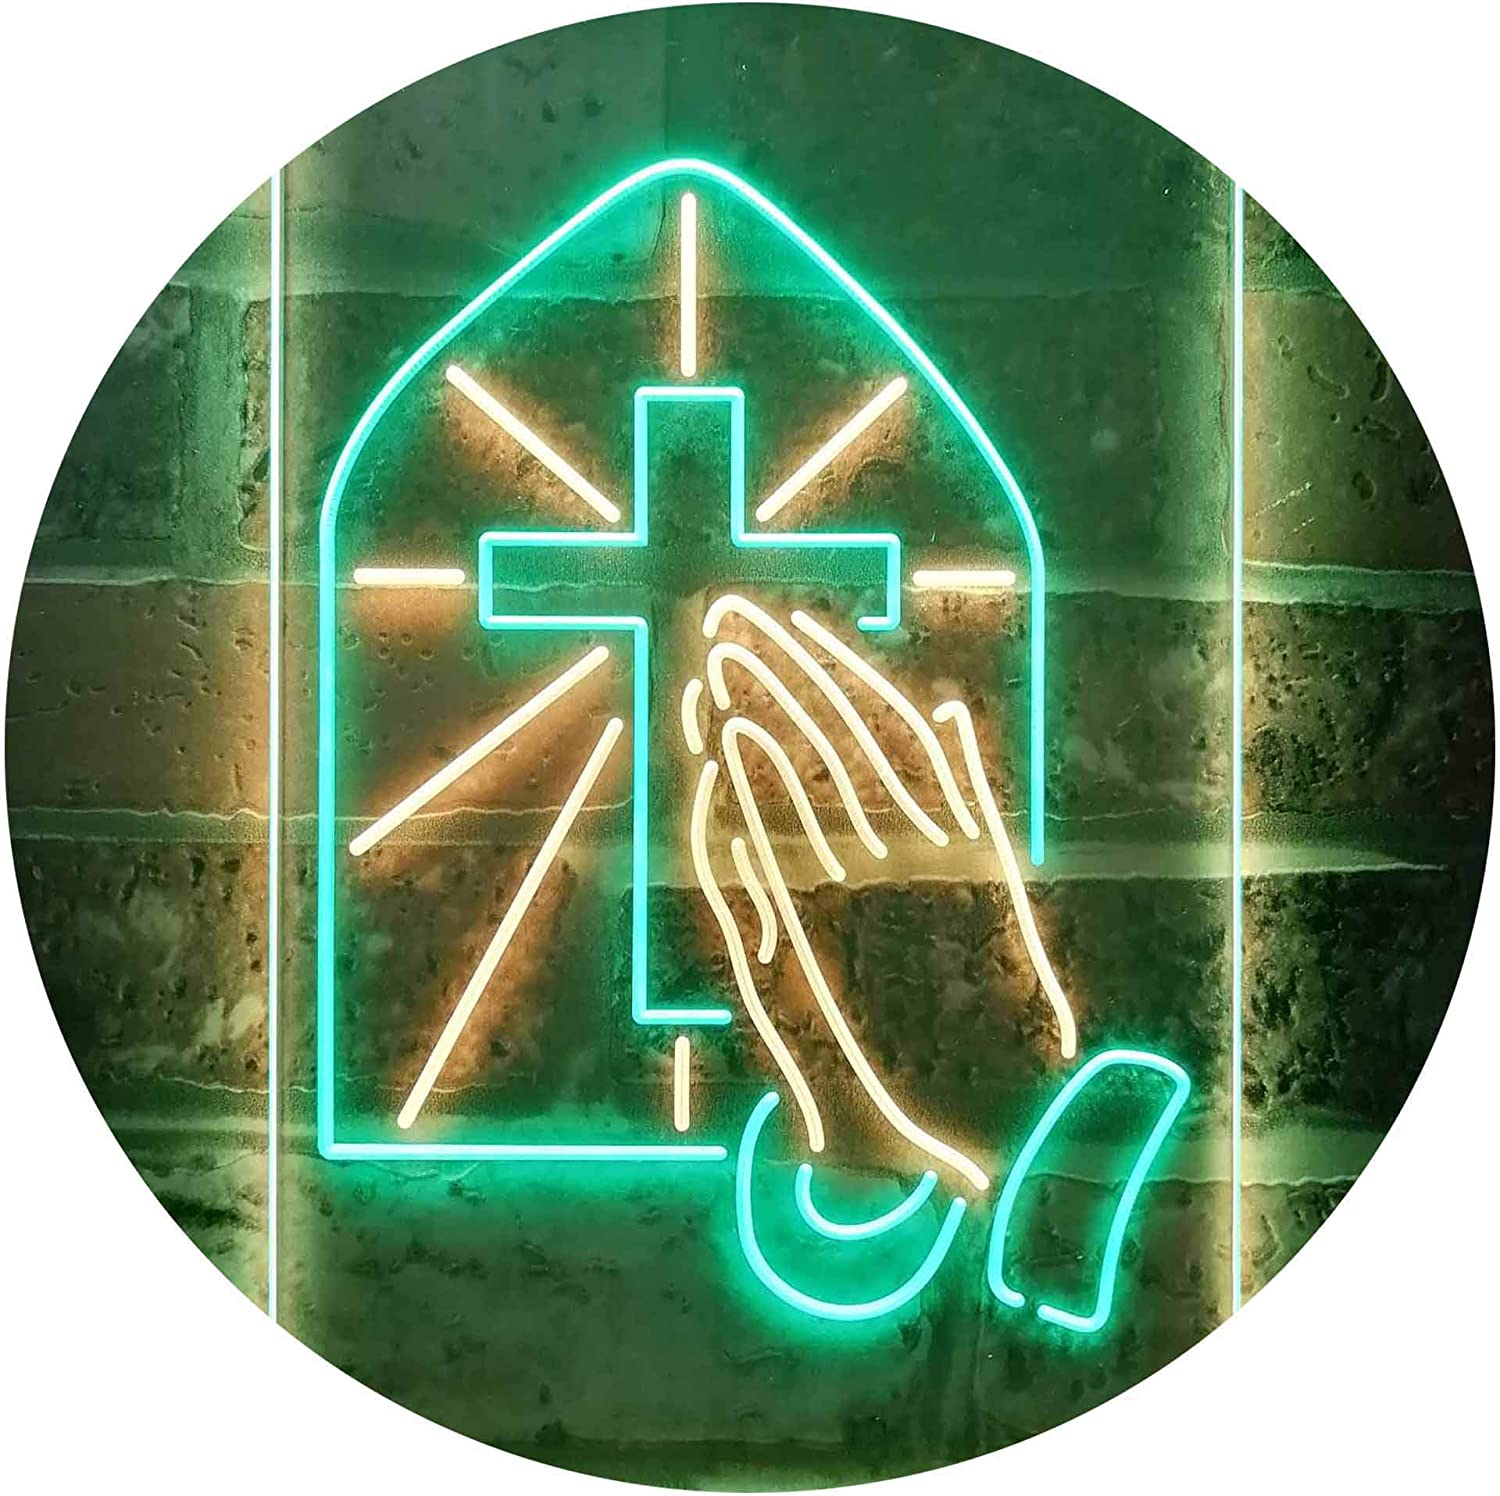 Max 78% OFF ADVPRO Crosses with Praying Hands Room Display LED favorite Ne Color Dual